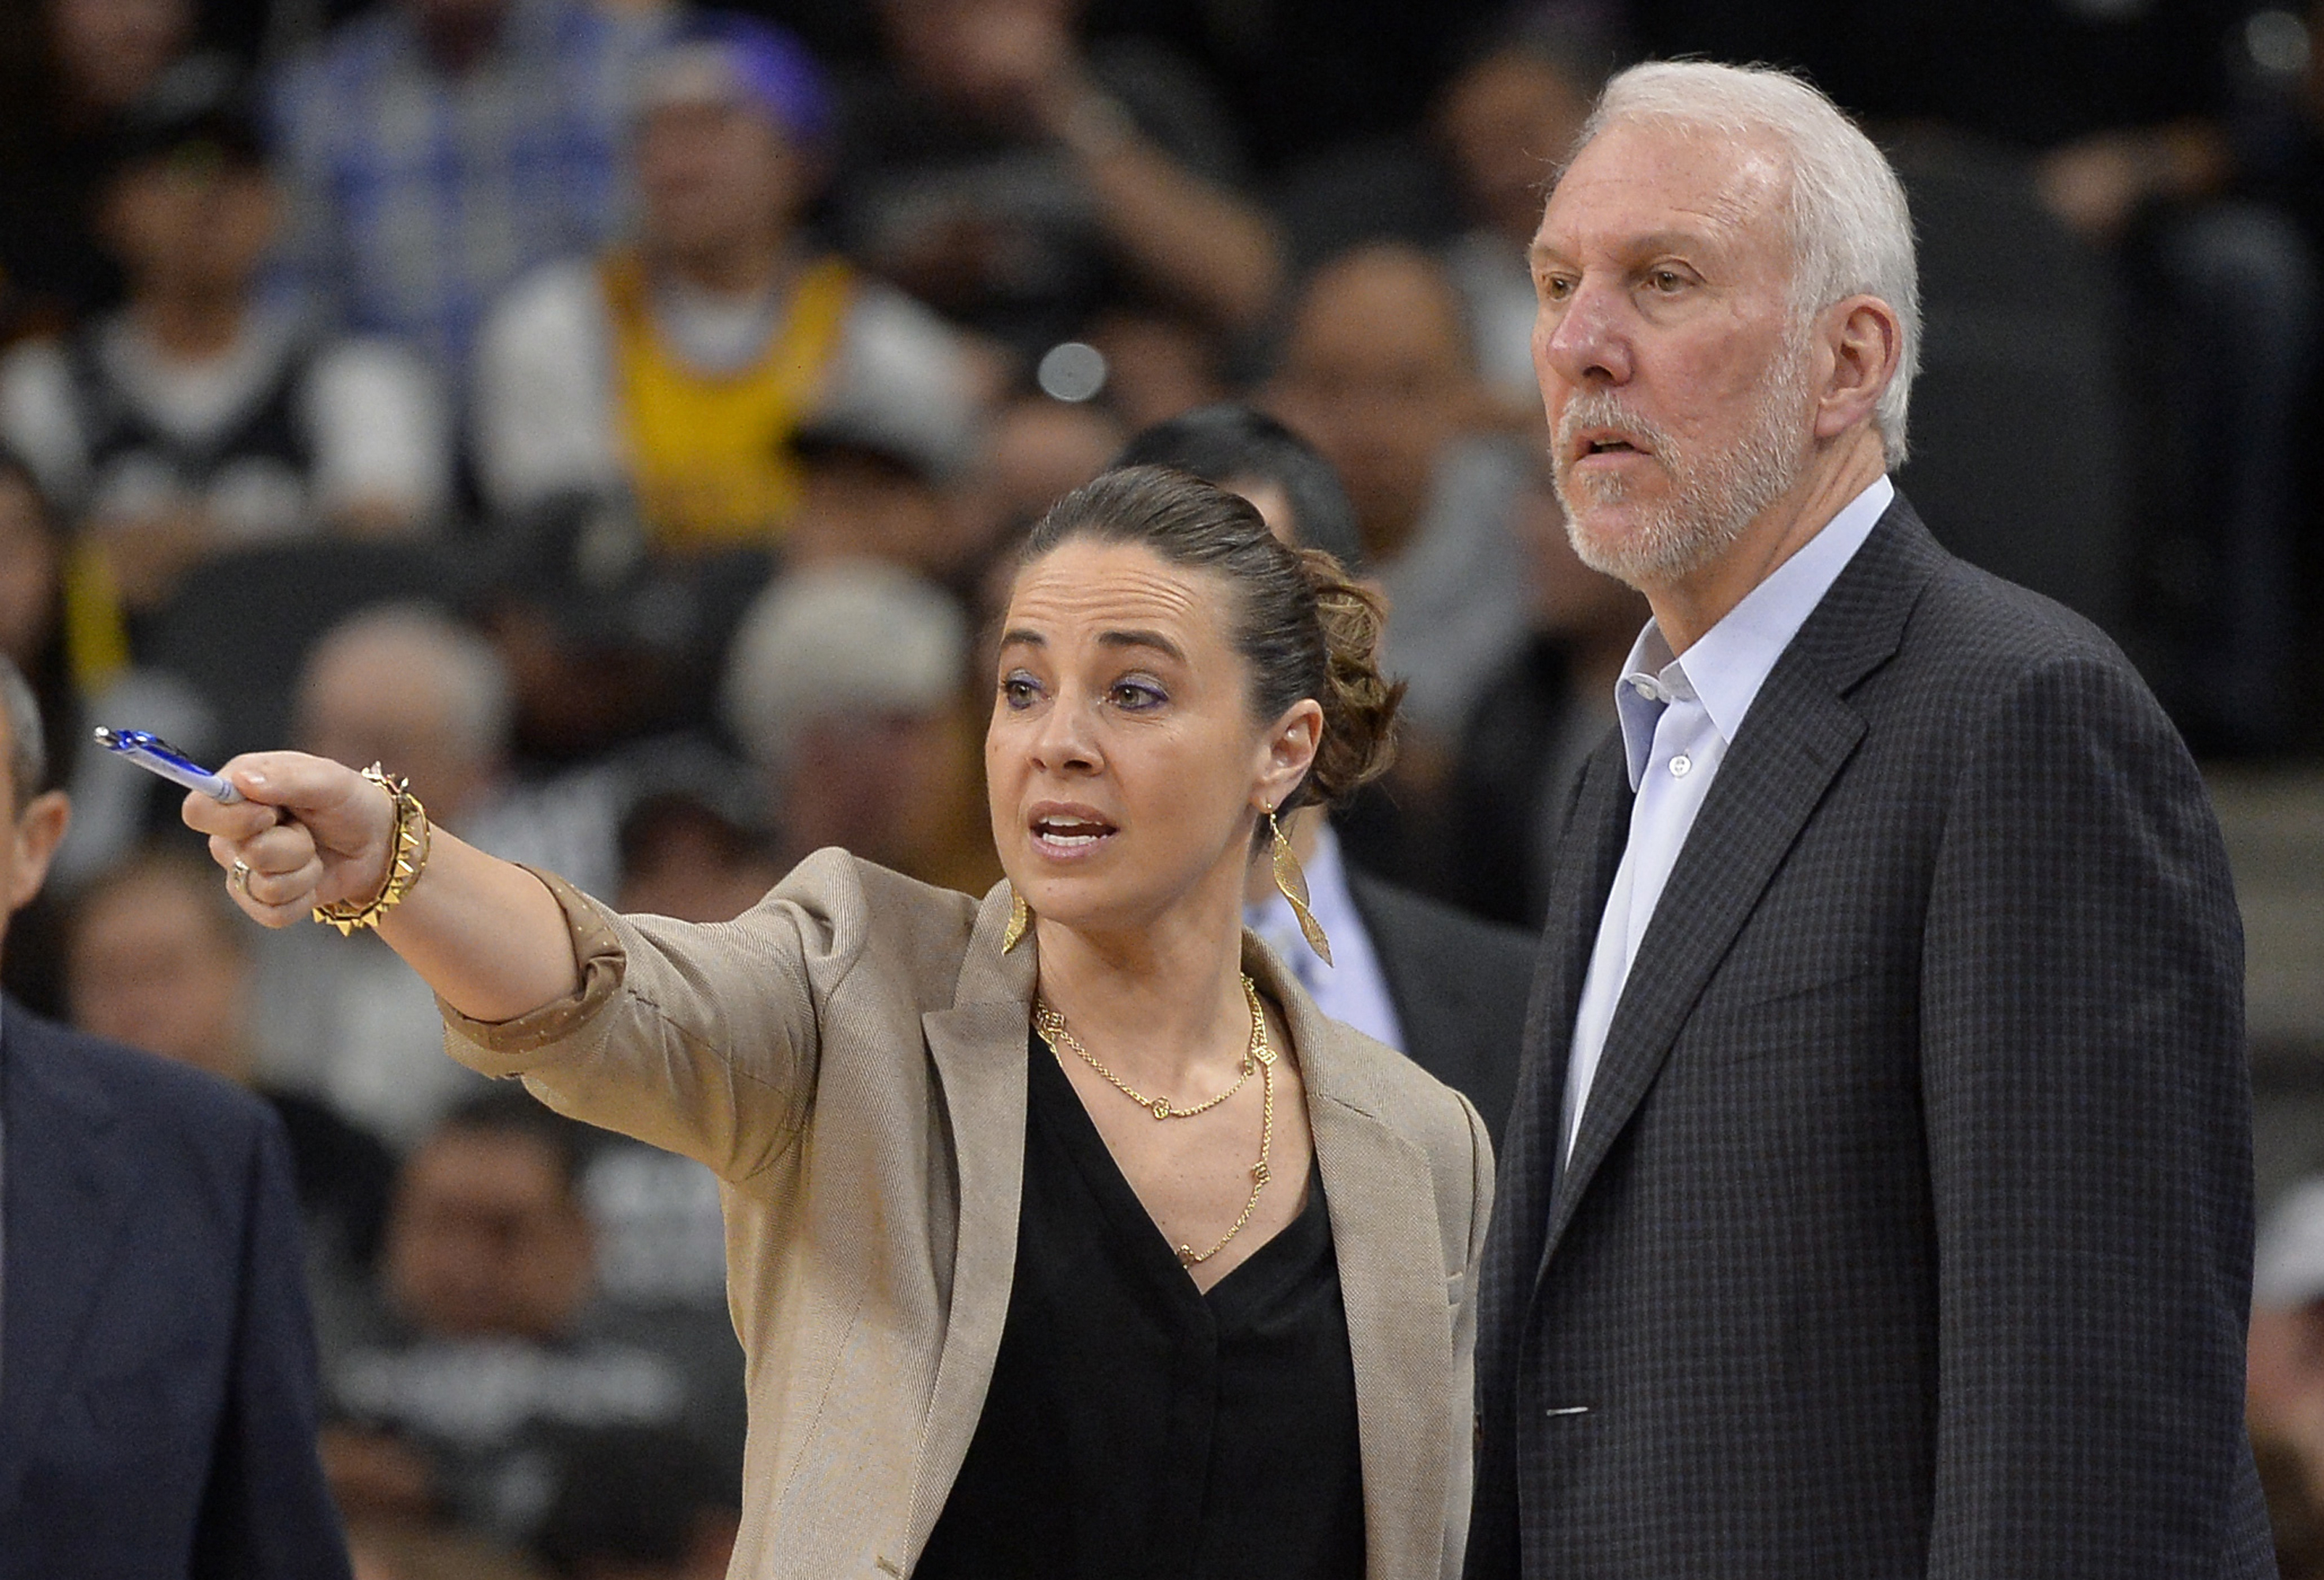 Next step for NBA is hiring women in positions of power